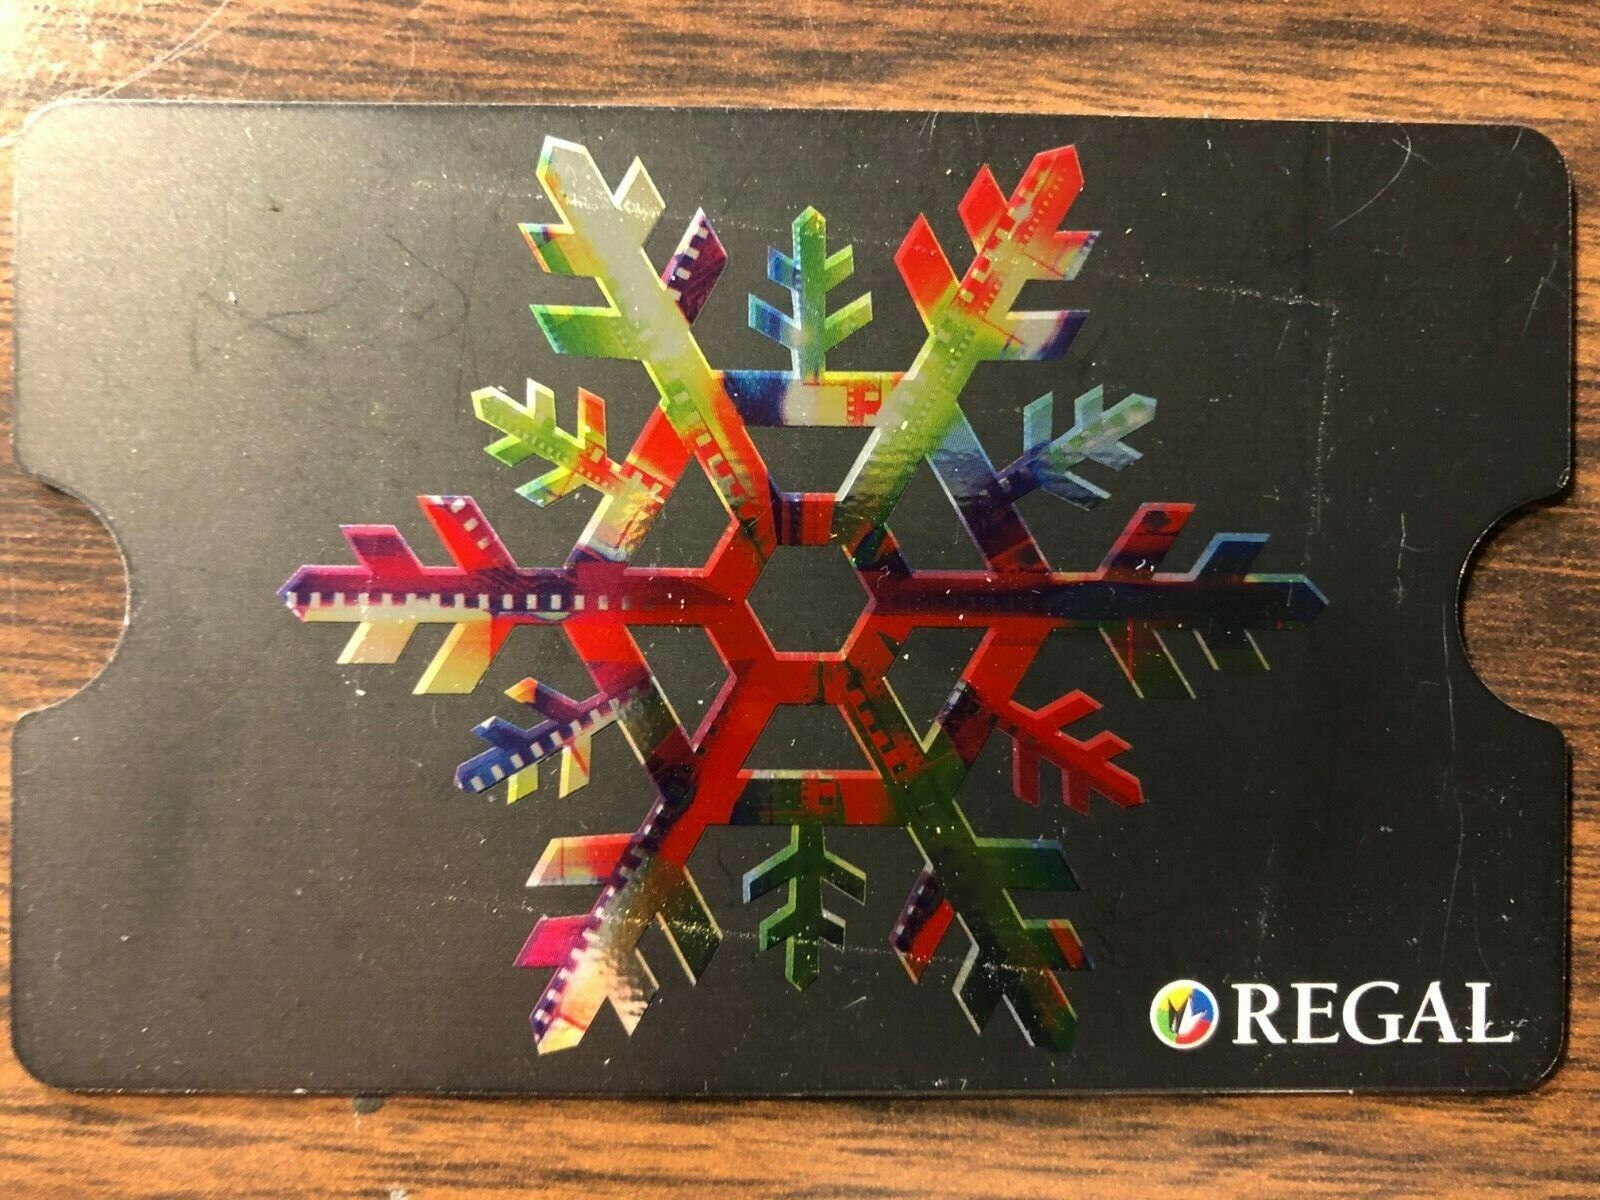 Regal Theaters Gift Card 25.34 Value. Free Shipping  - $14.00